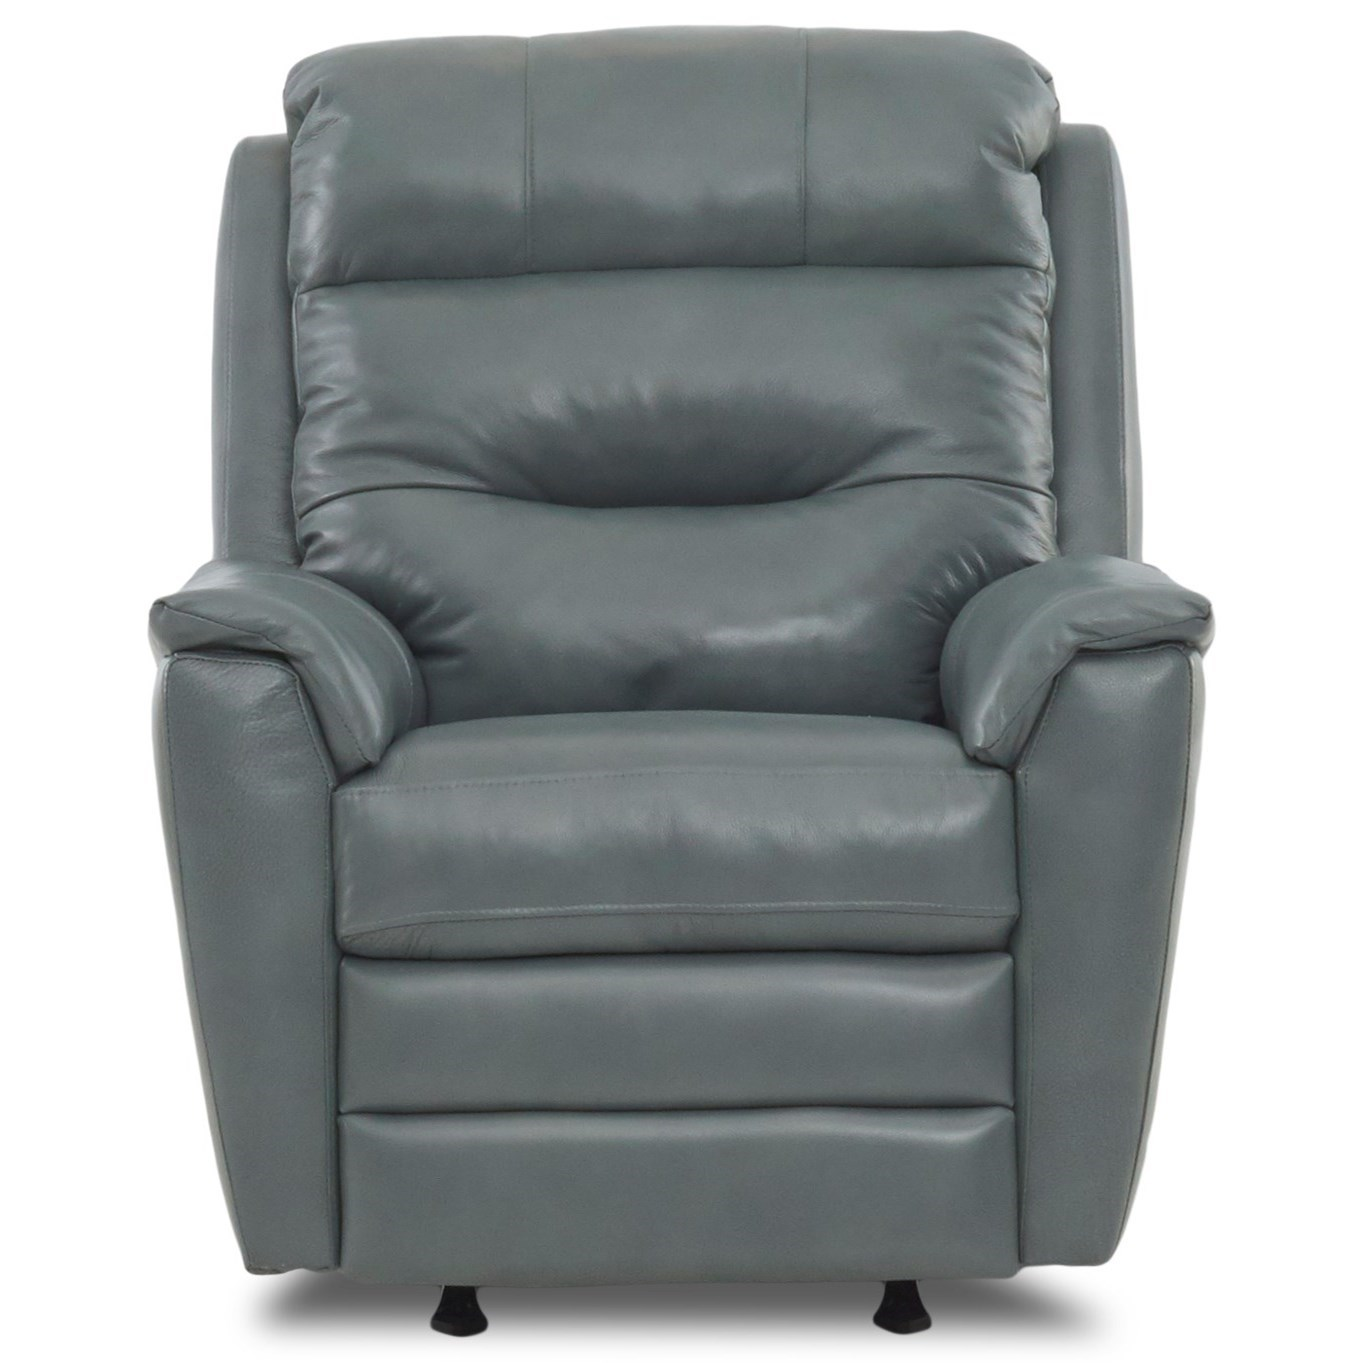 Nola Pwr Rocking Recliner w/ Pwr Head and Lumbar by Klaussner at Catalog Outlet